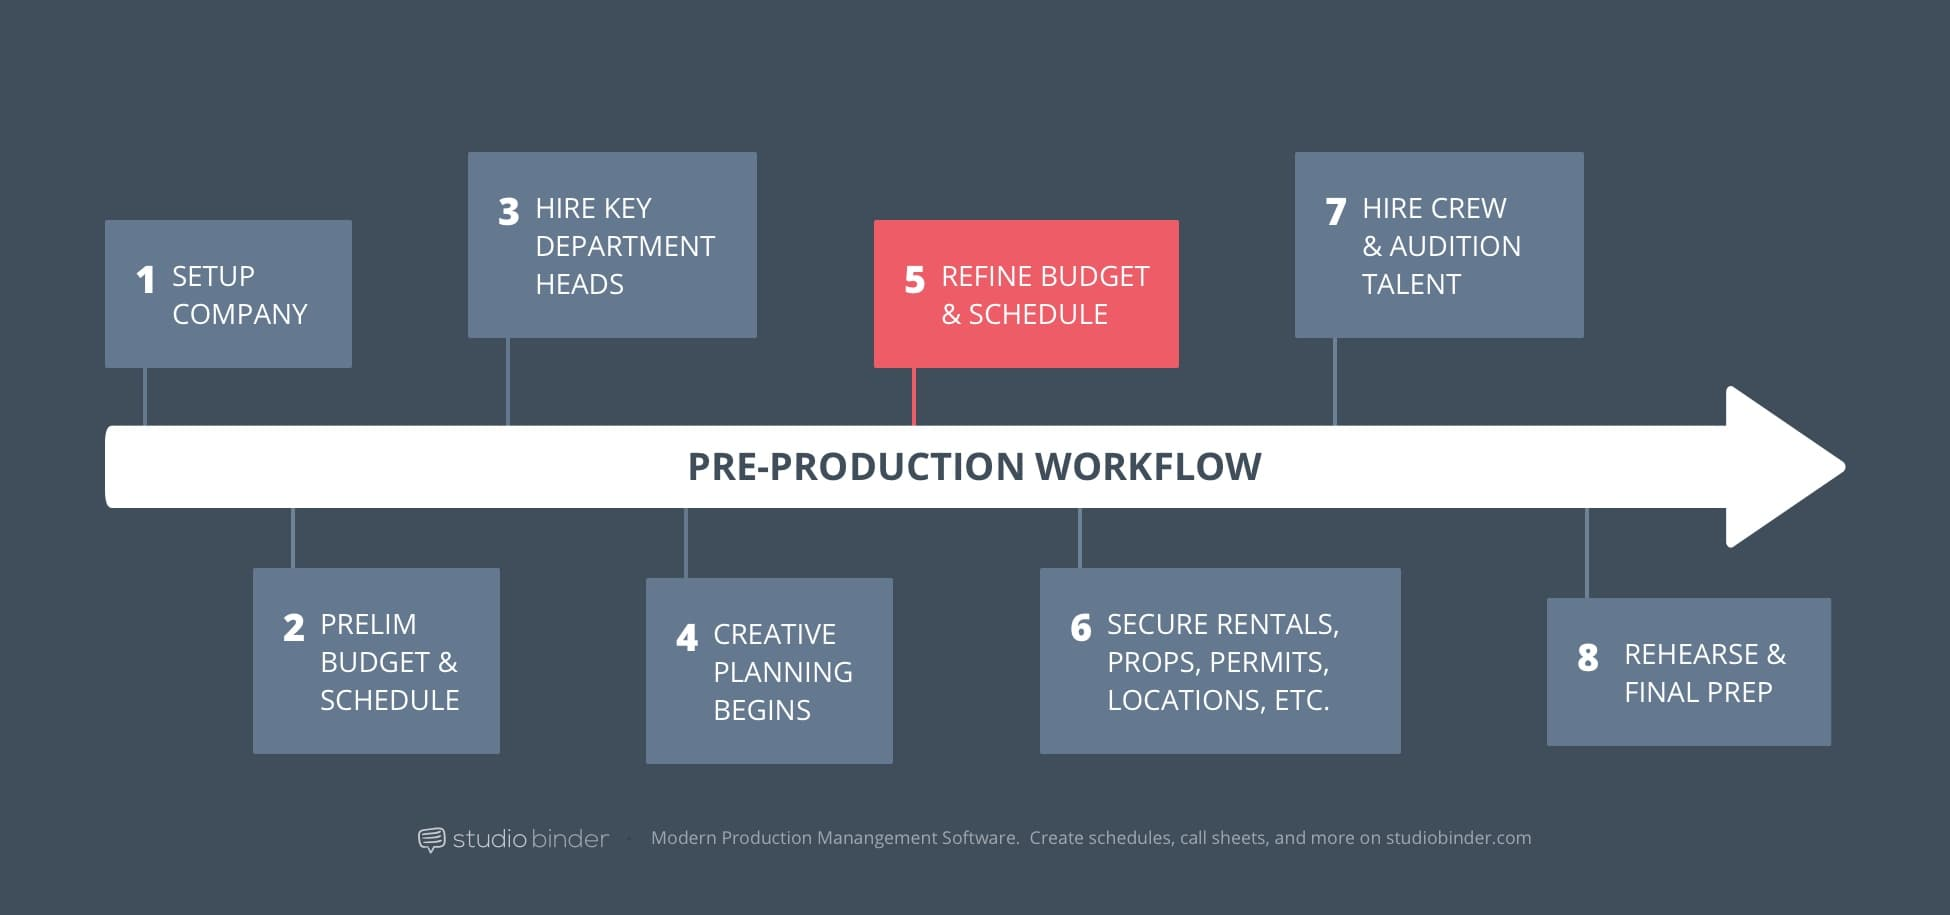 5 – StudioBinder Pre-Production Workflow – Refine Budget and Schedule